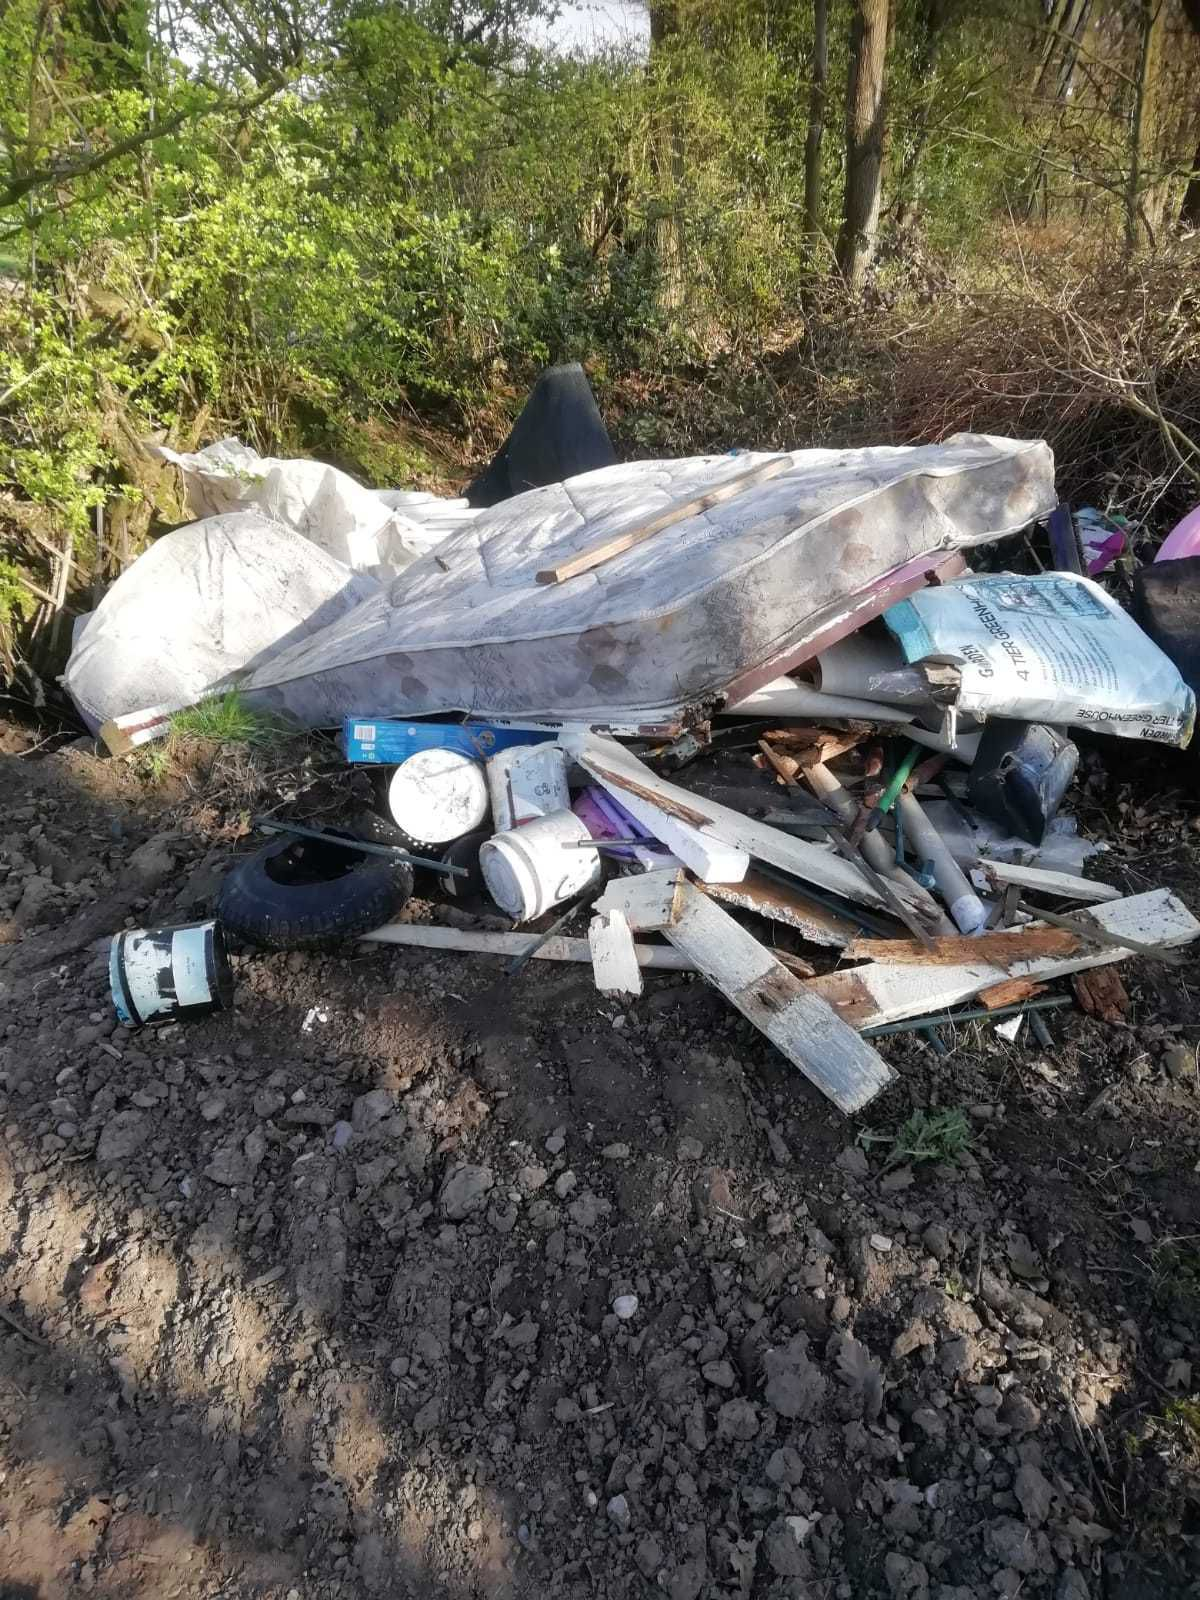 Fly-tipping has soared during the pandemic.